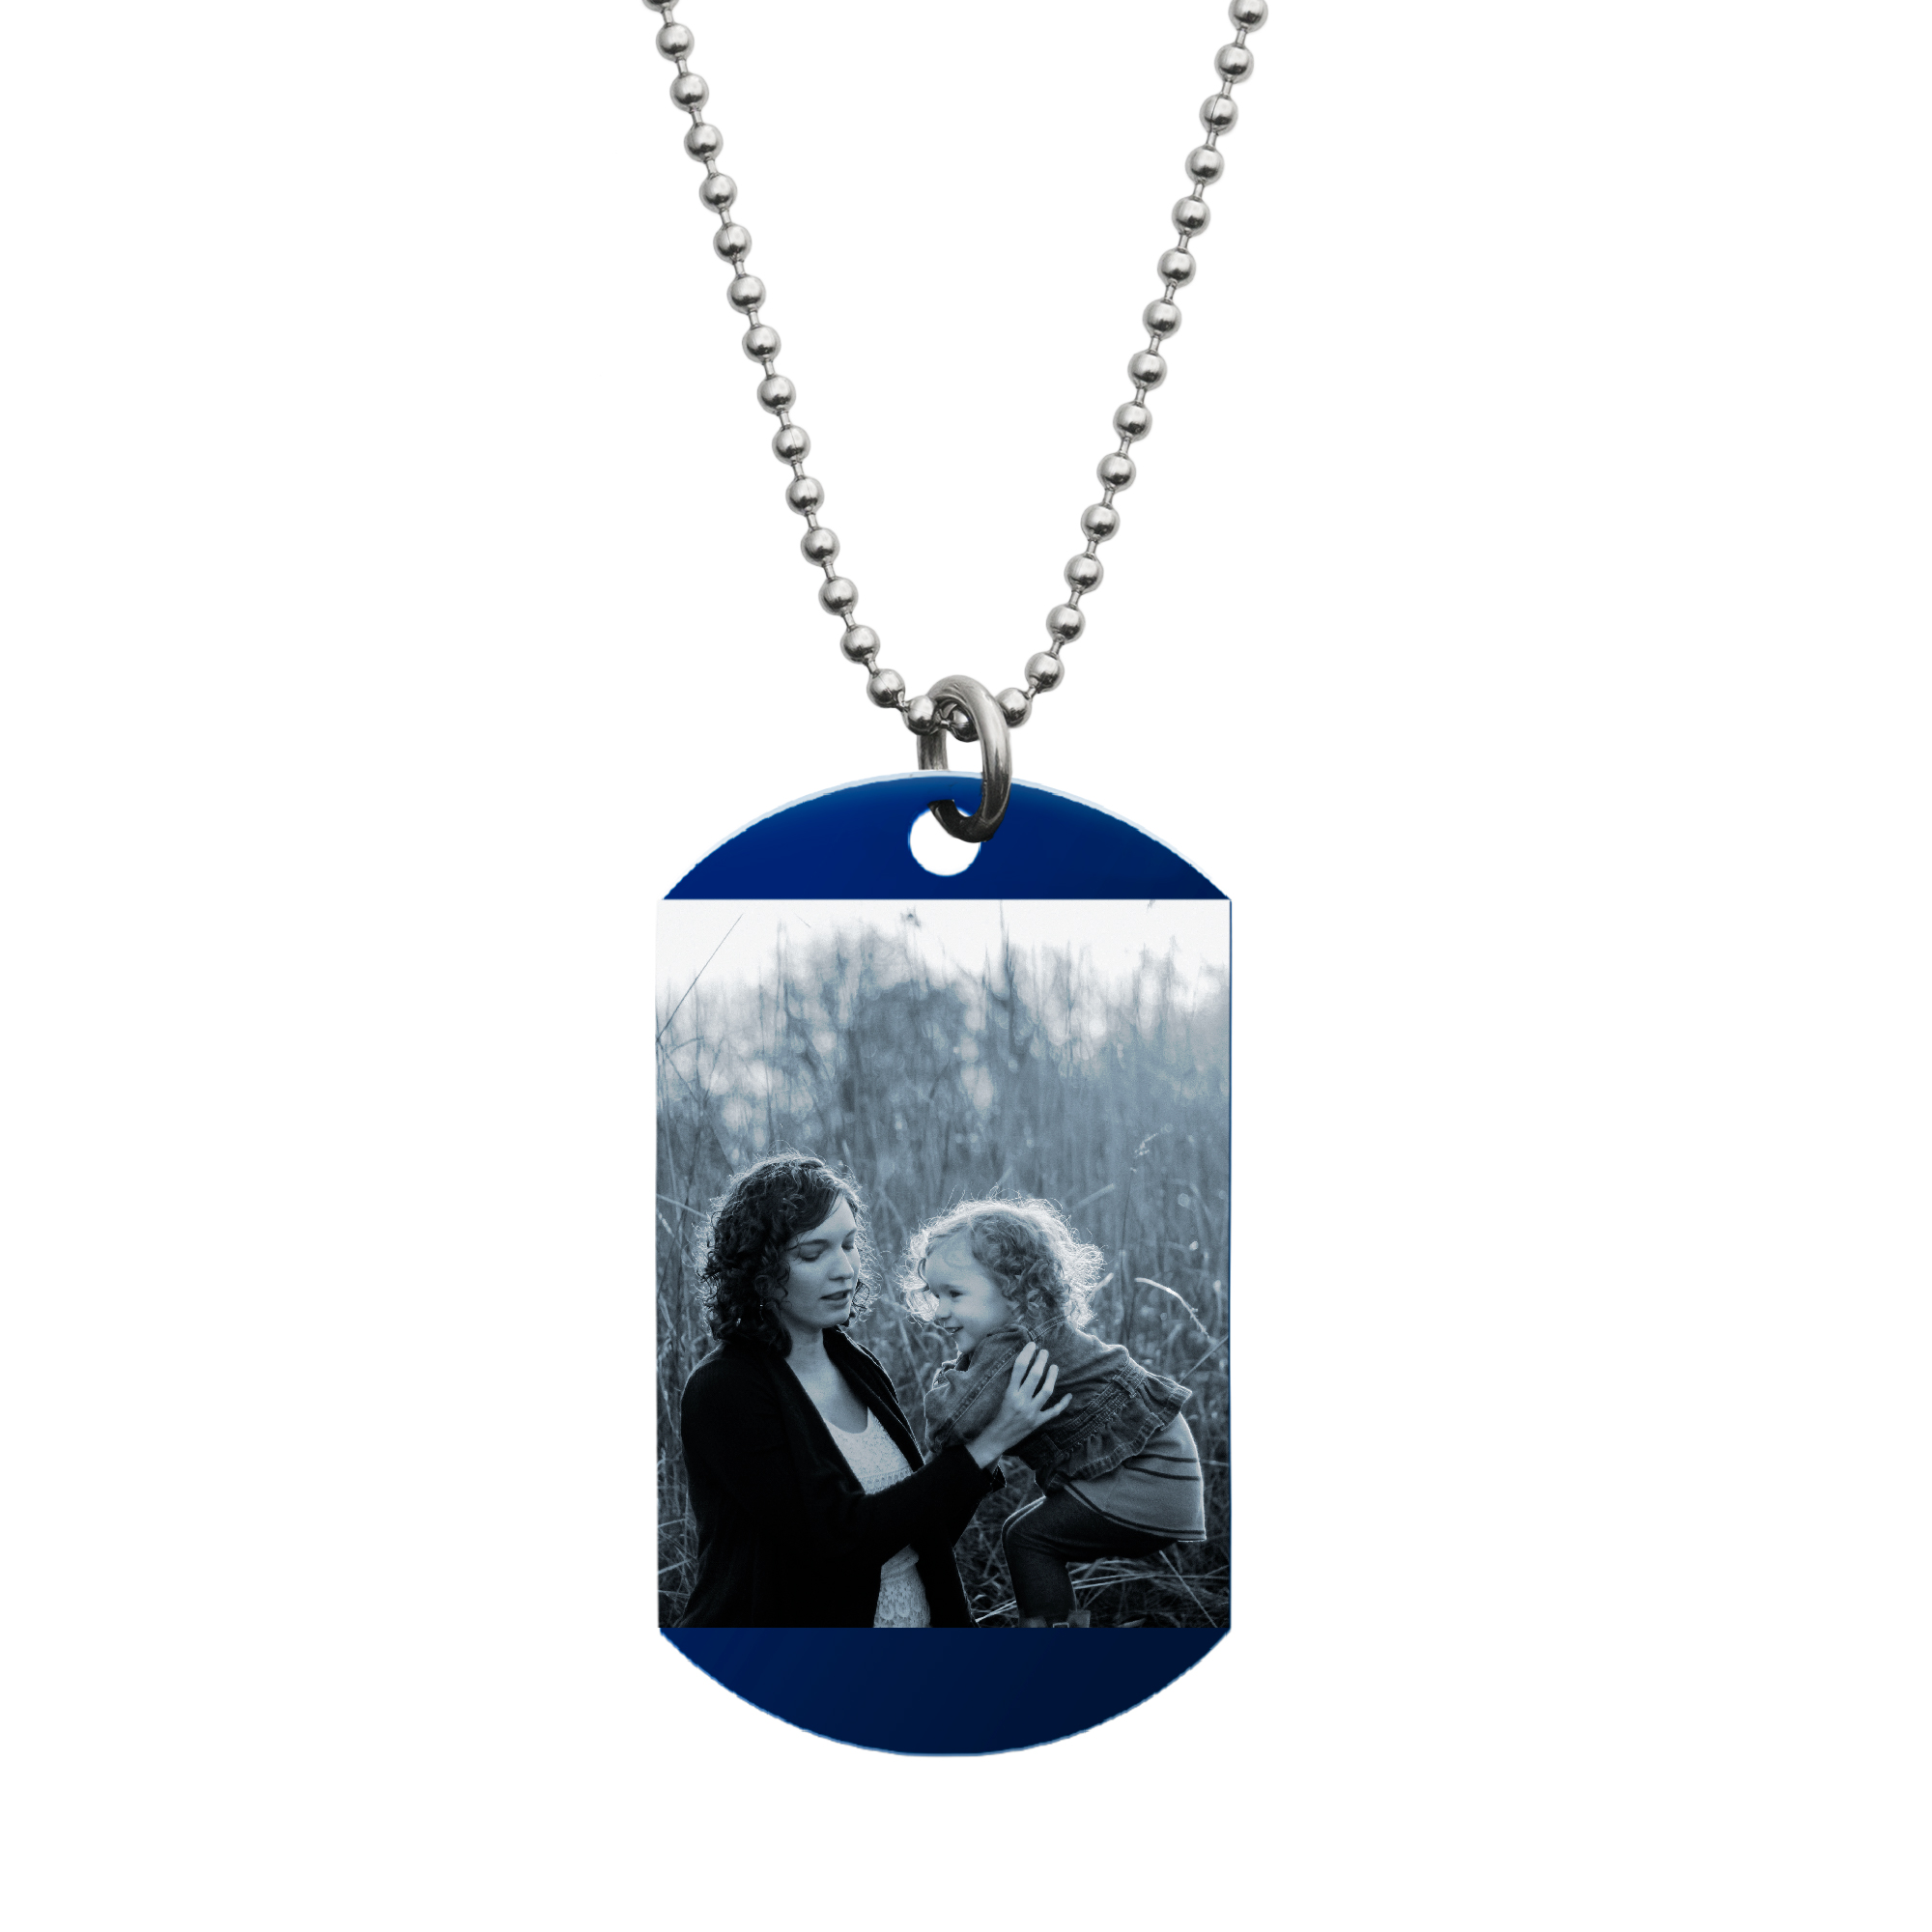 "Stainless Steel One Side Personalized Photo Engraving Custom Blue Dog Tag w/ Dot Ball Chain Necklace 24"" - Handmade"